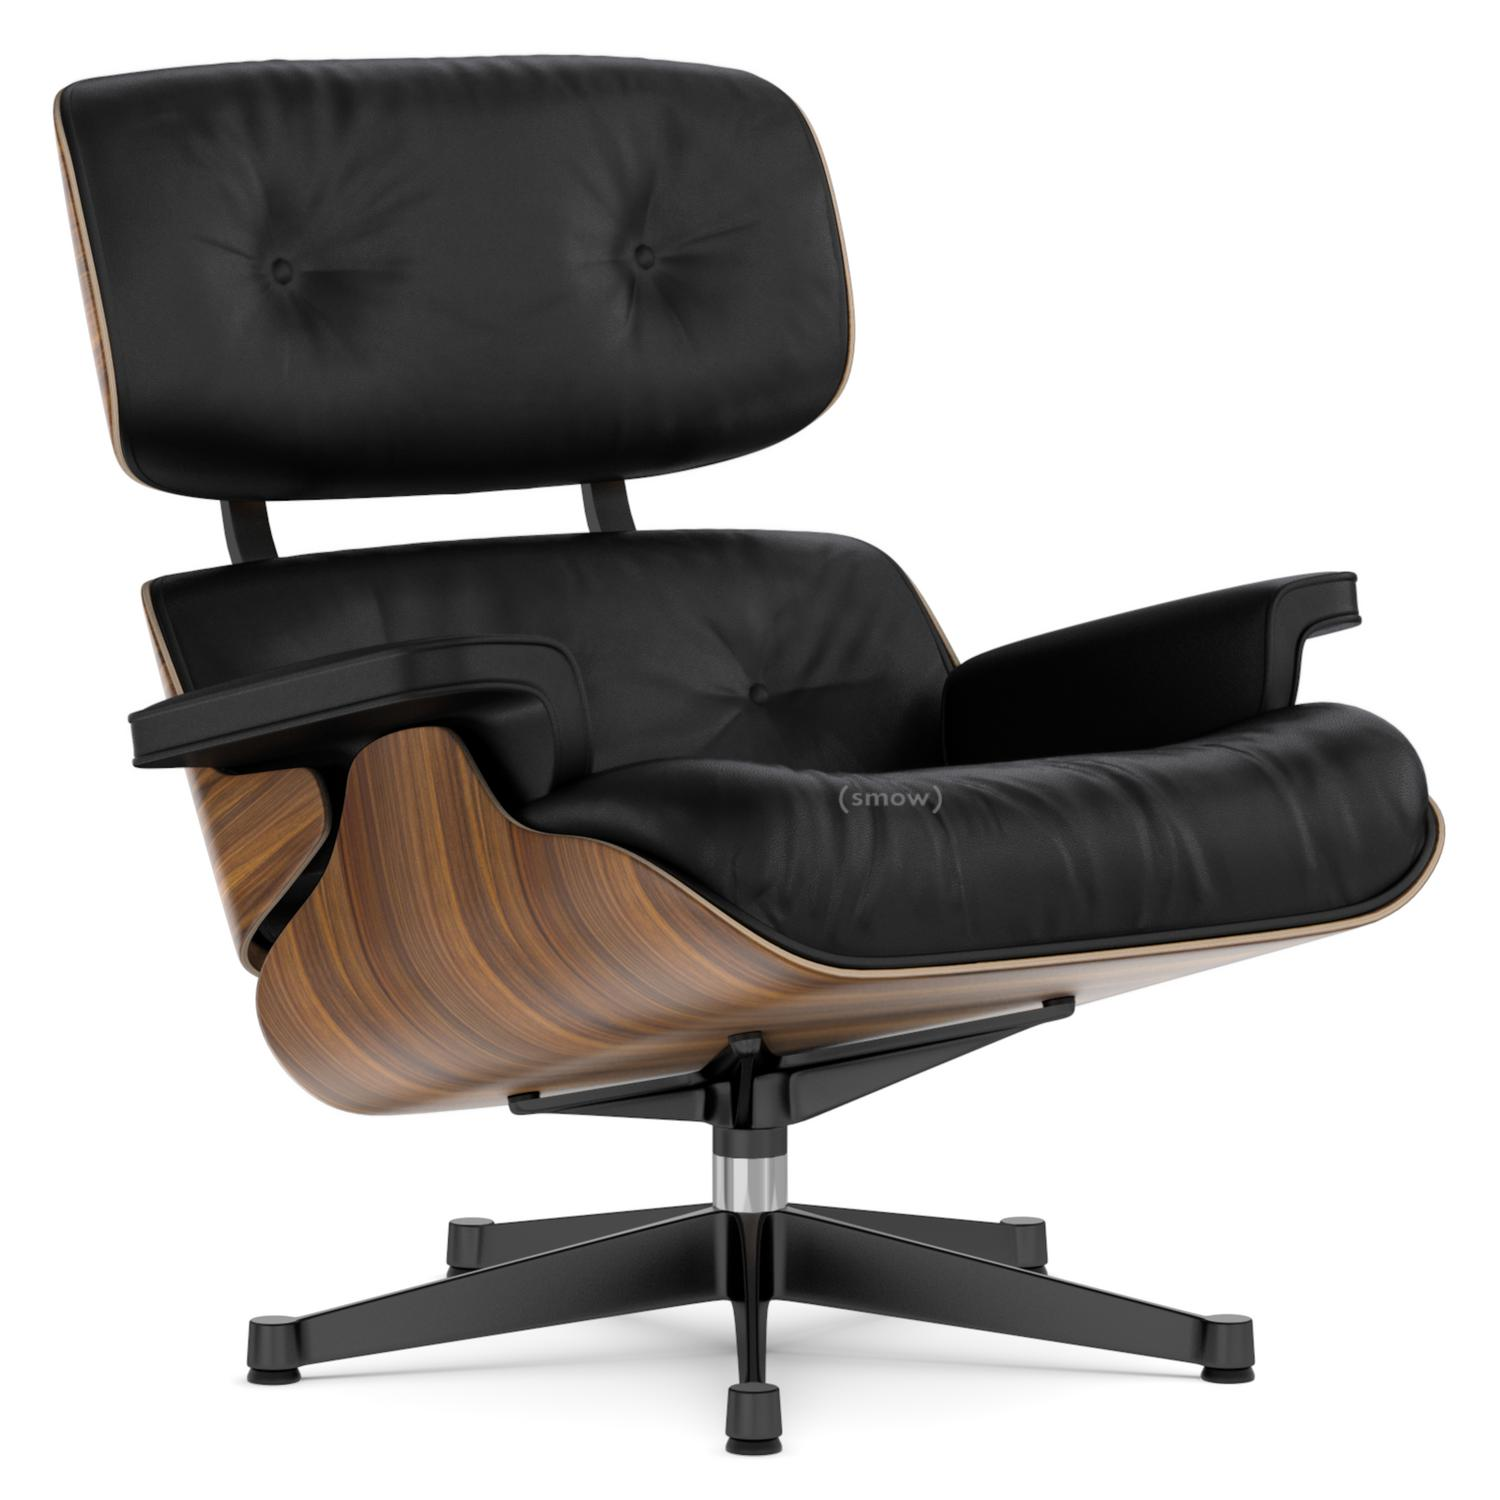 Vitra lounge chair by charles ray eames 1956 designer for Eames vitra replica